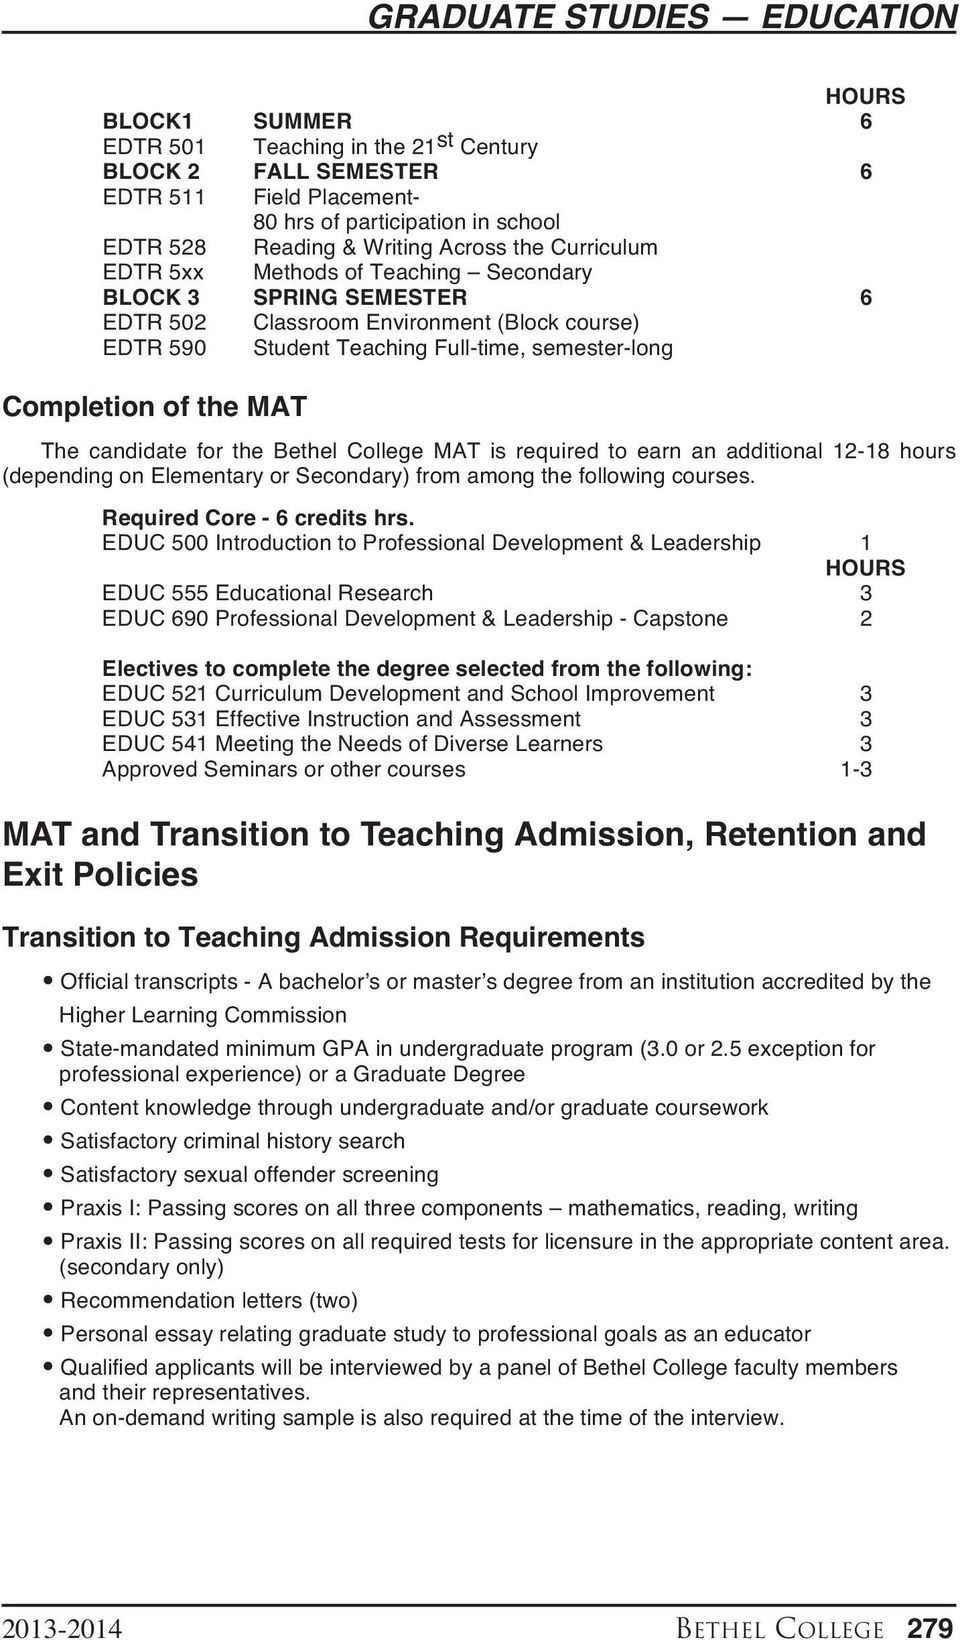 the MAT The candidate for the Bethel College MAT is required to earn an additional 12-18 hours (depending on Elementary or Secondary) from among the following courses. Required Core - 6 credits hrs.